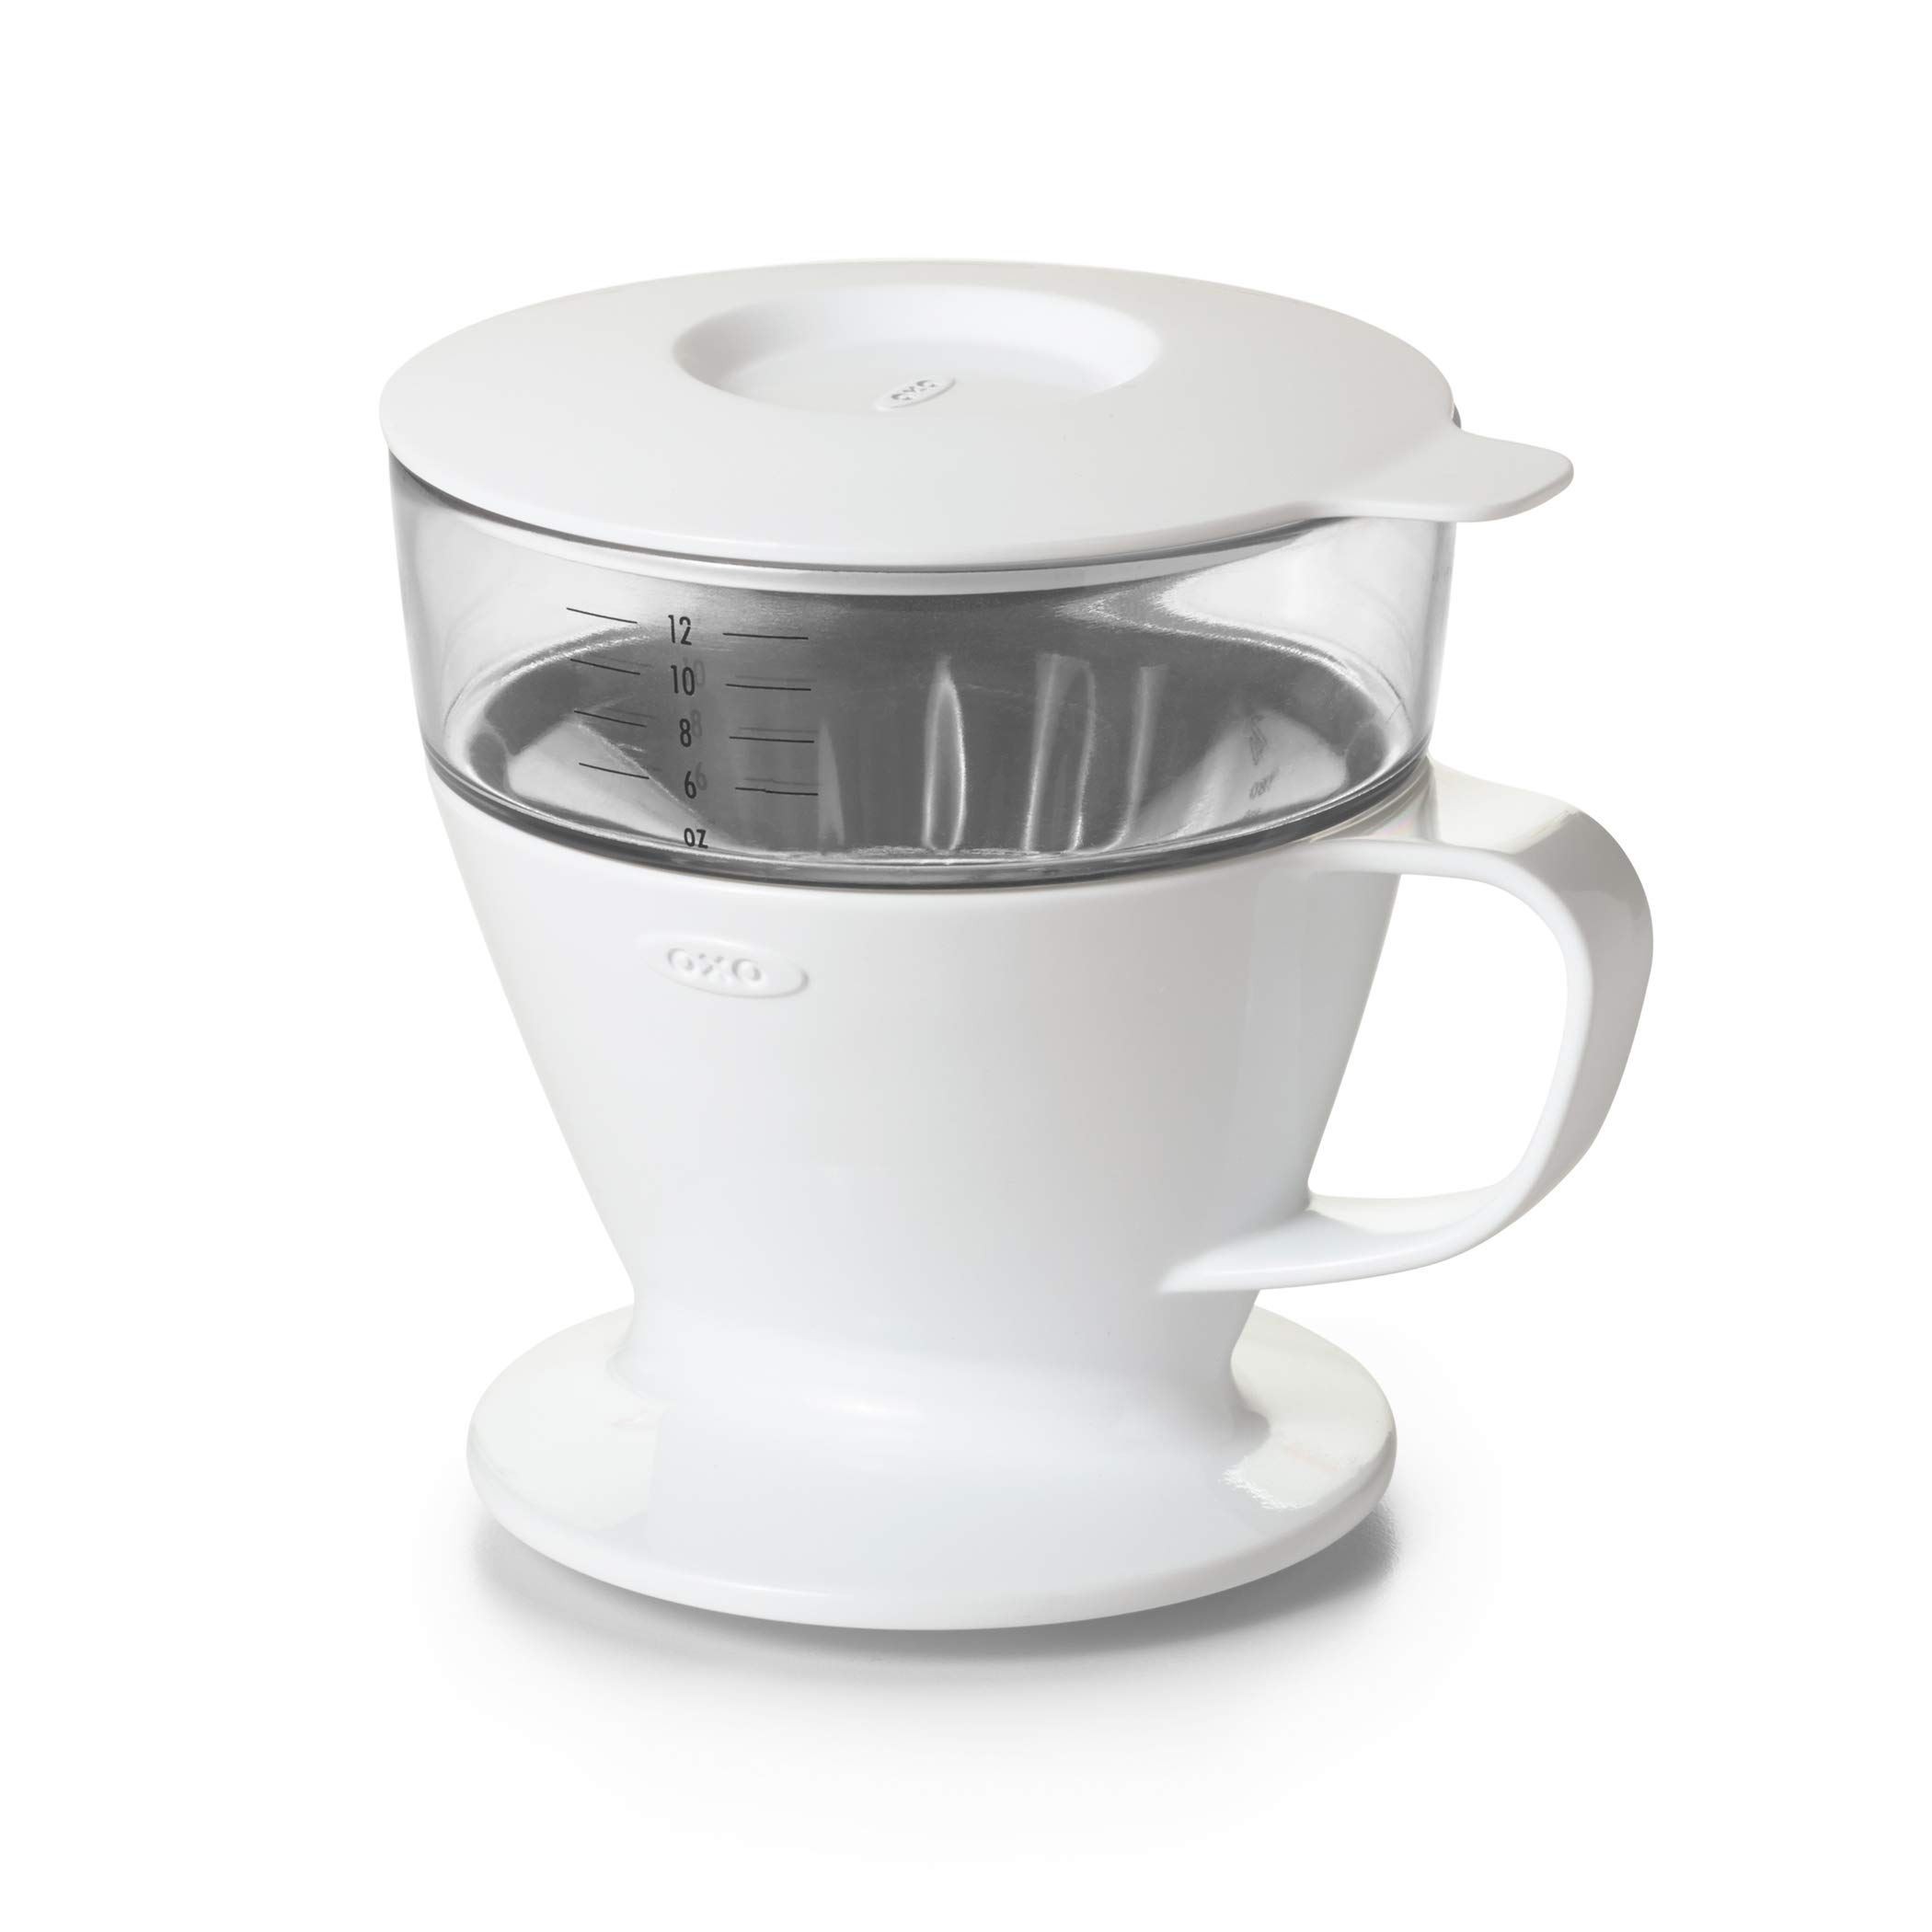 OXO BREW Single Serve Pour Over Coffee Dripper with Auto-Drip Water Tank by OXO